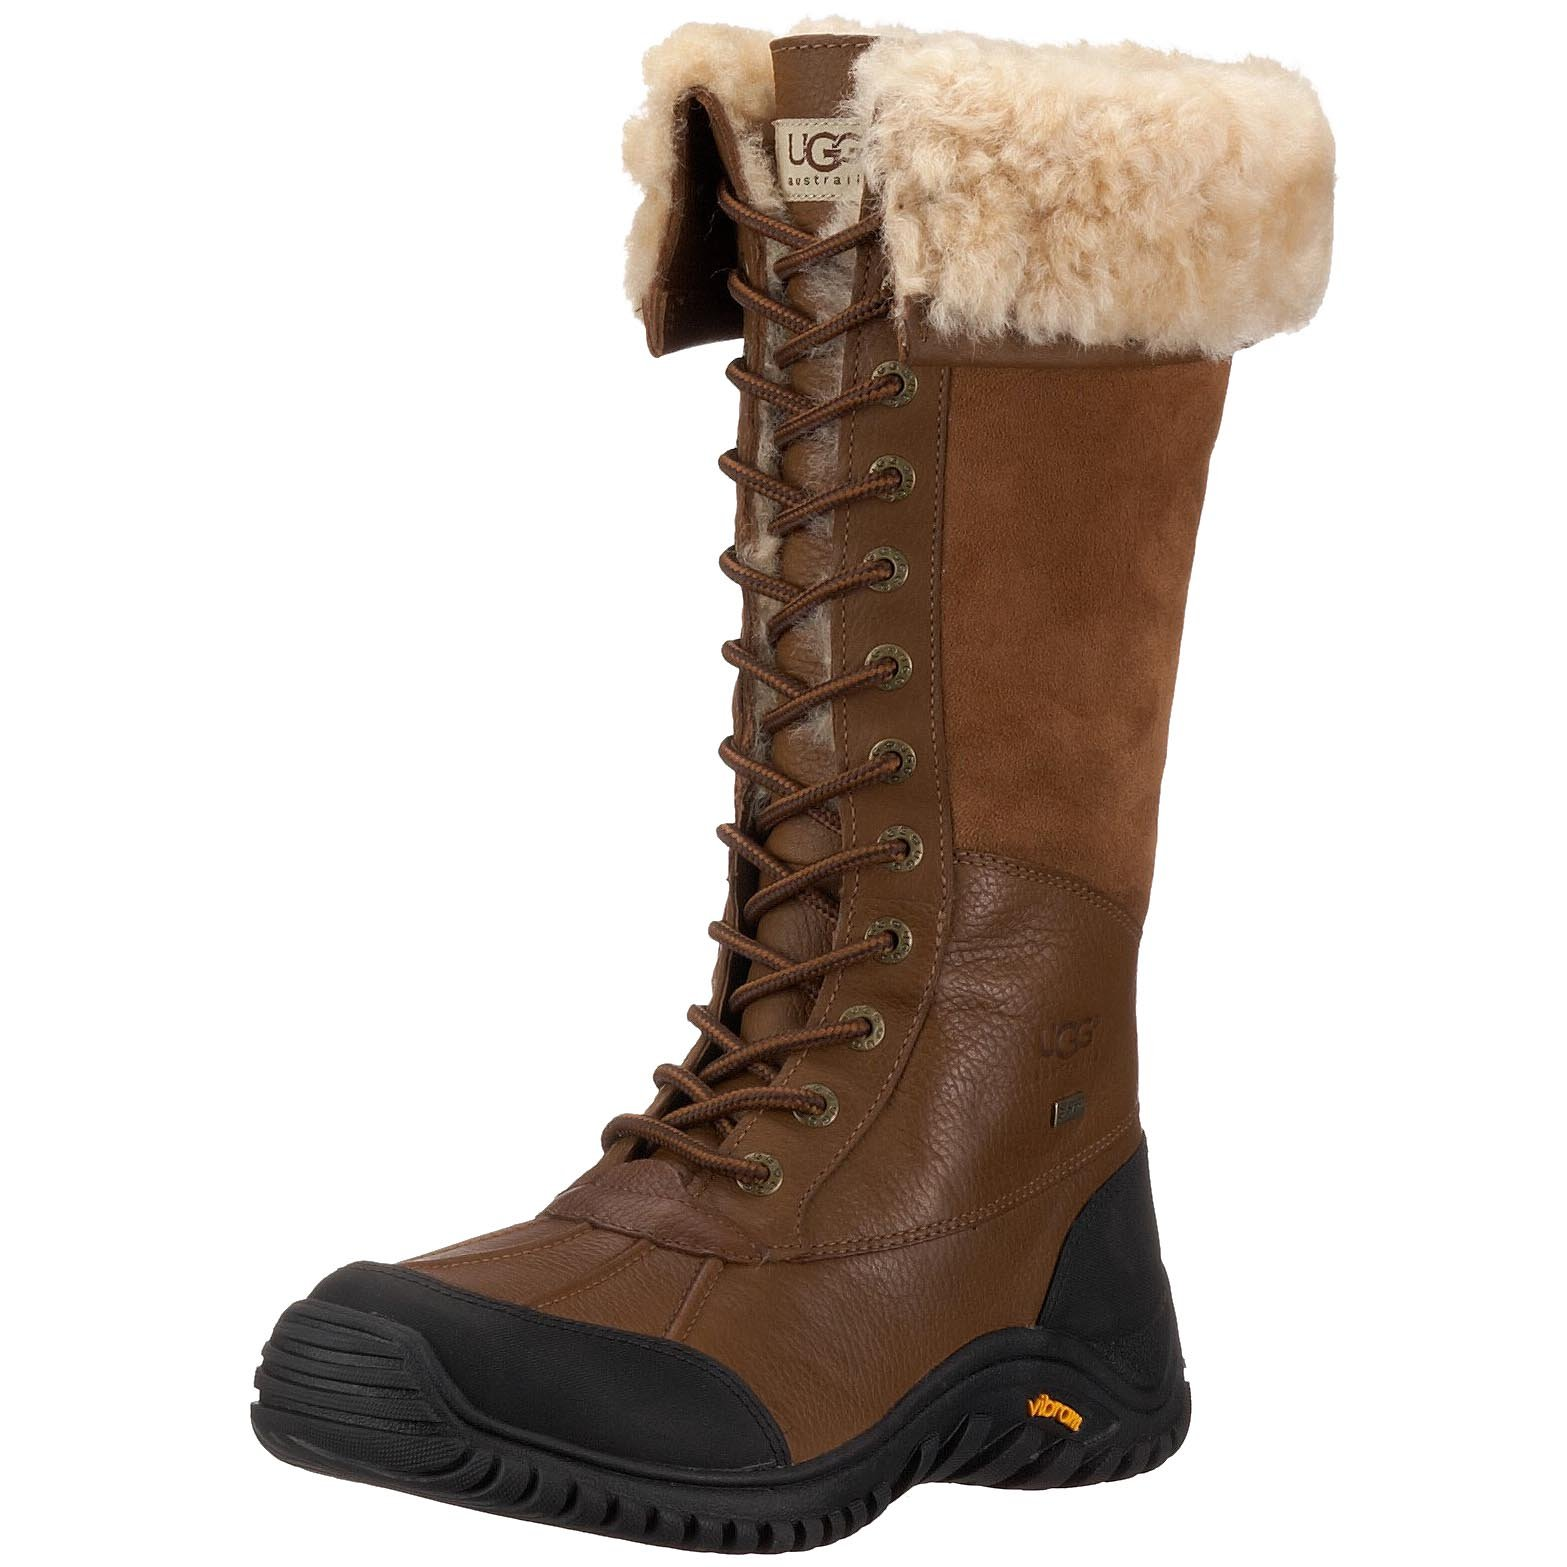 UGG Women's Adirondack Tall Snow Boot, Otter, 6 M US